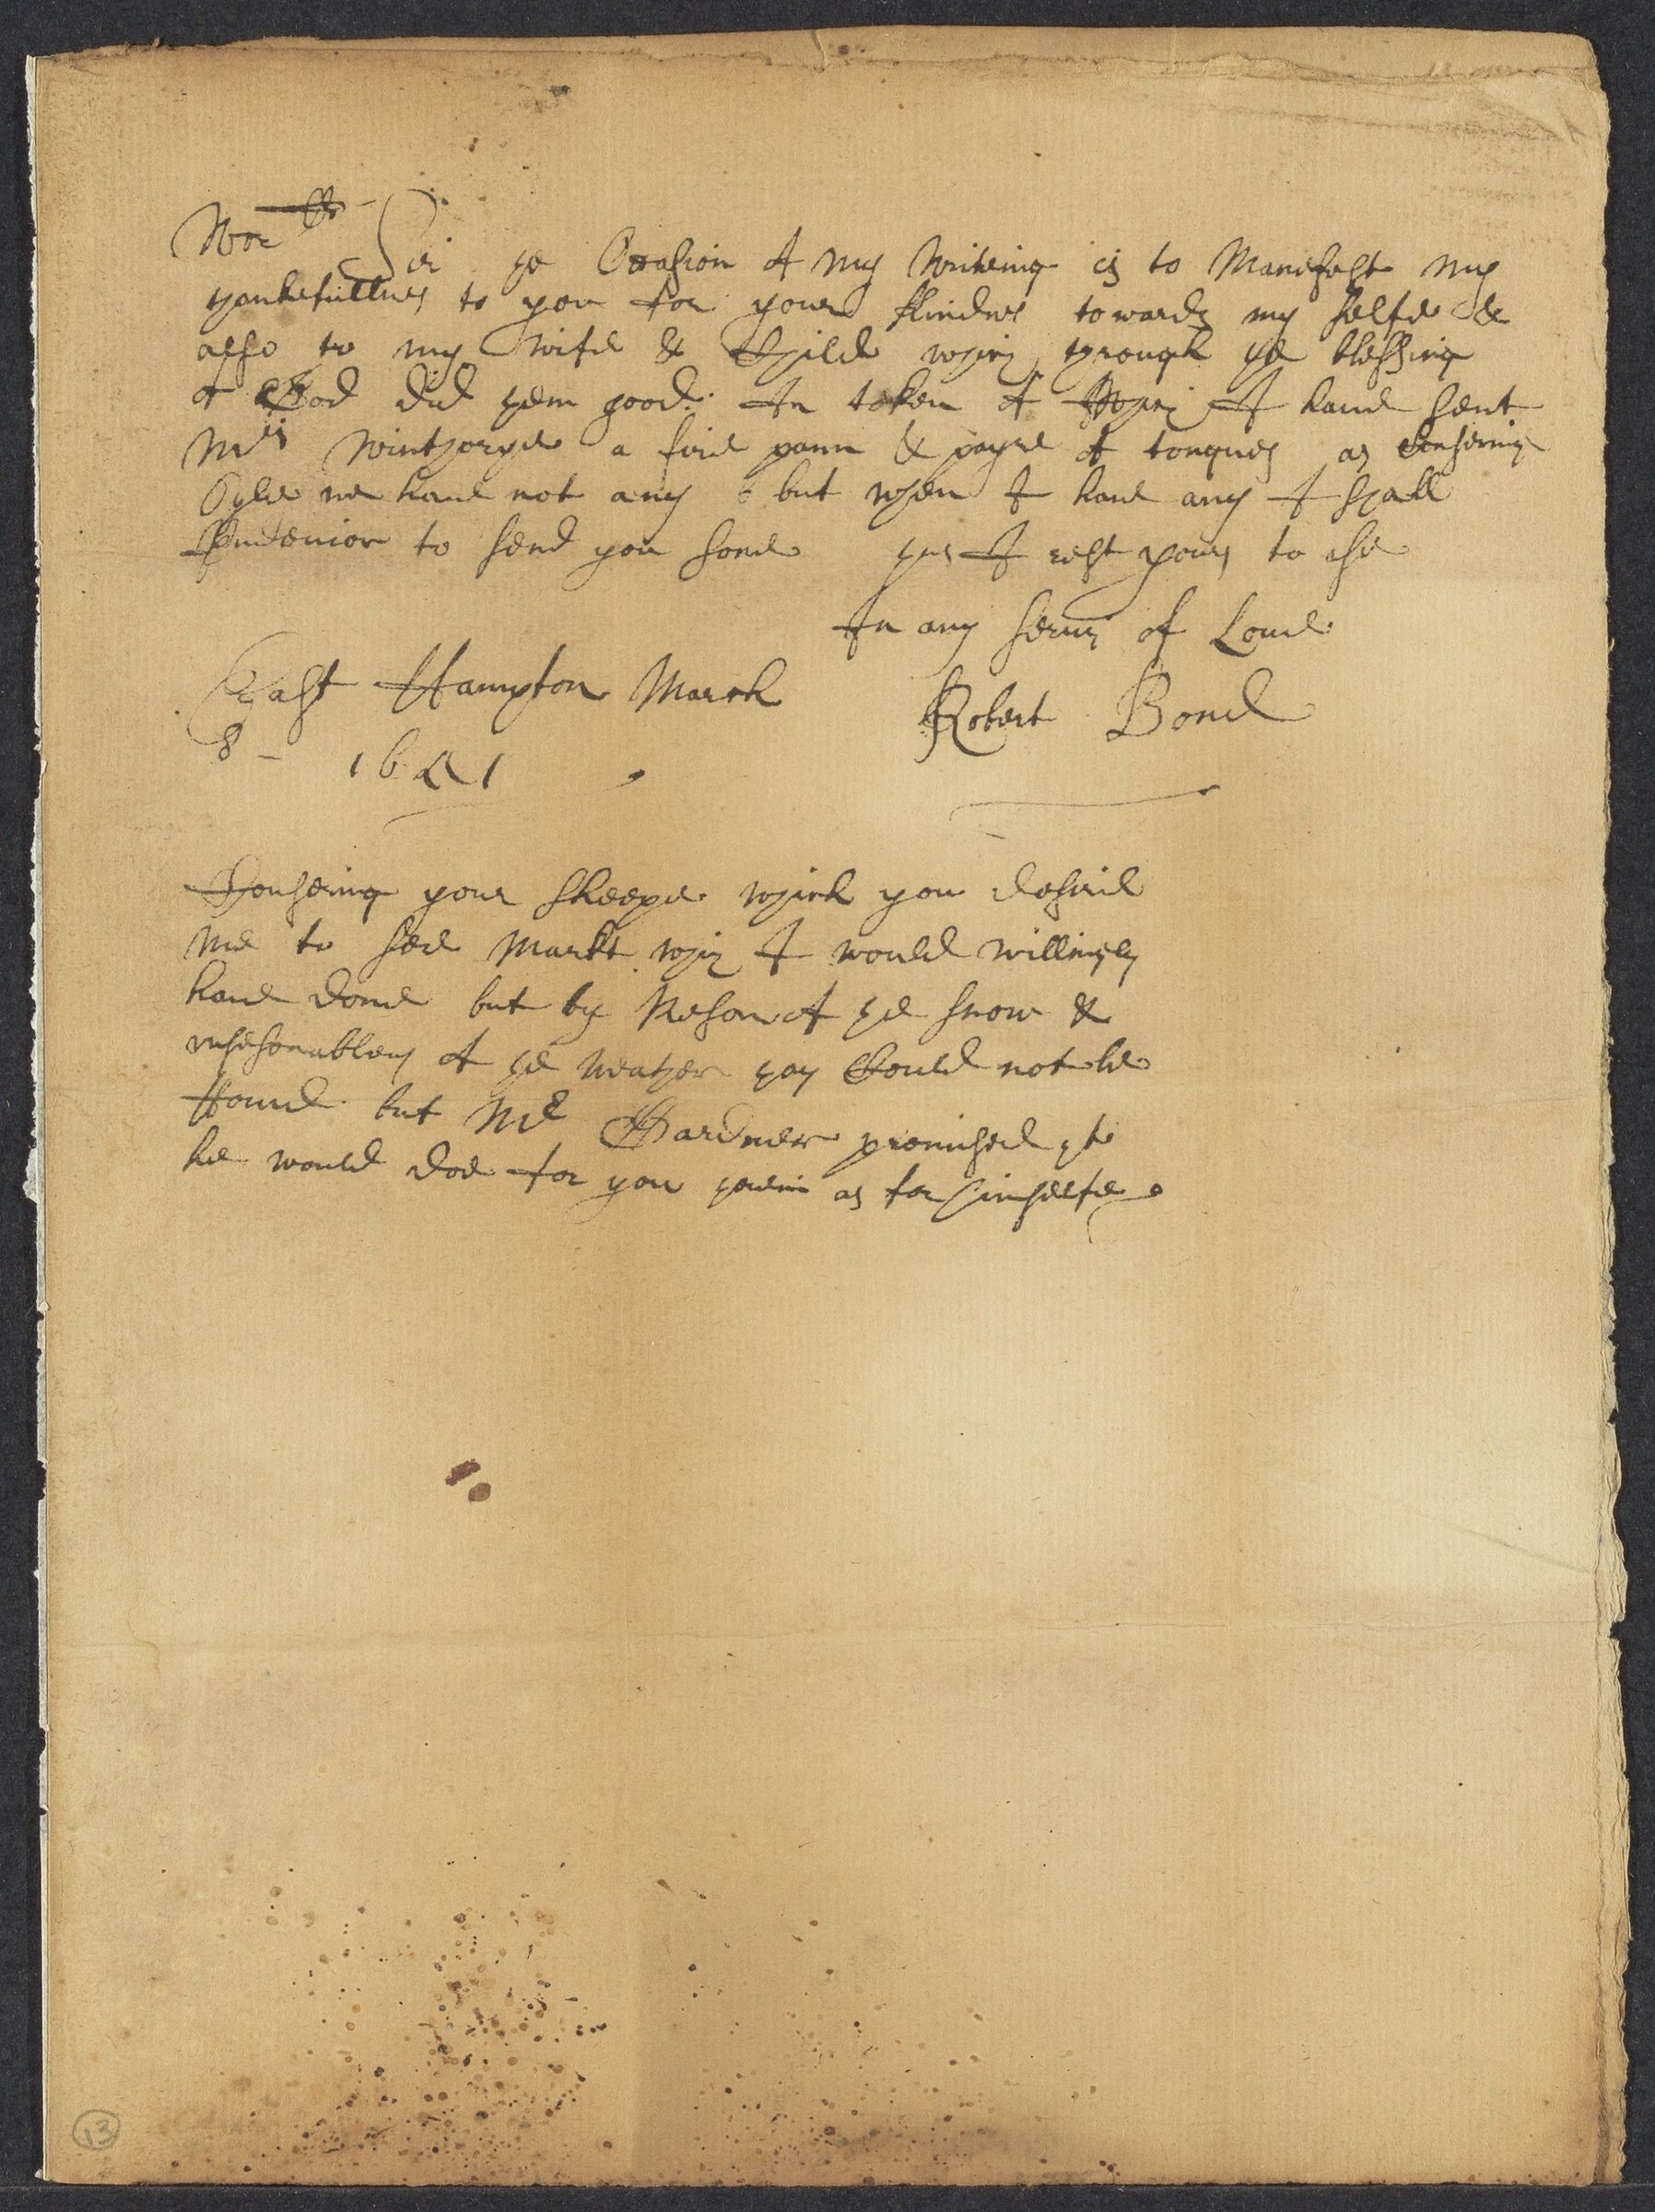 Bond, Robert, 2 autographed letters signed to John Winthrop; East Hampton, Conn., 1651 March 8-March 10